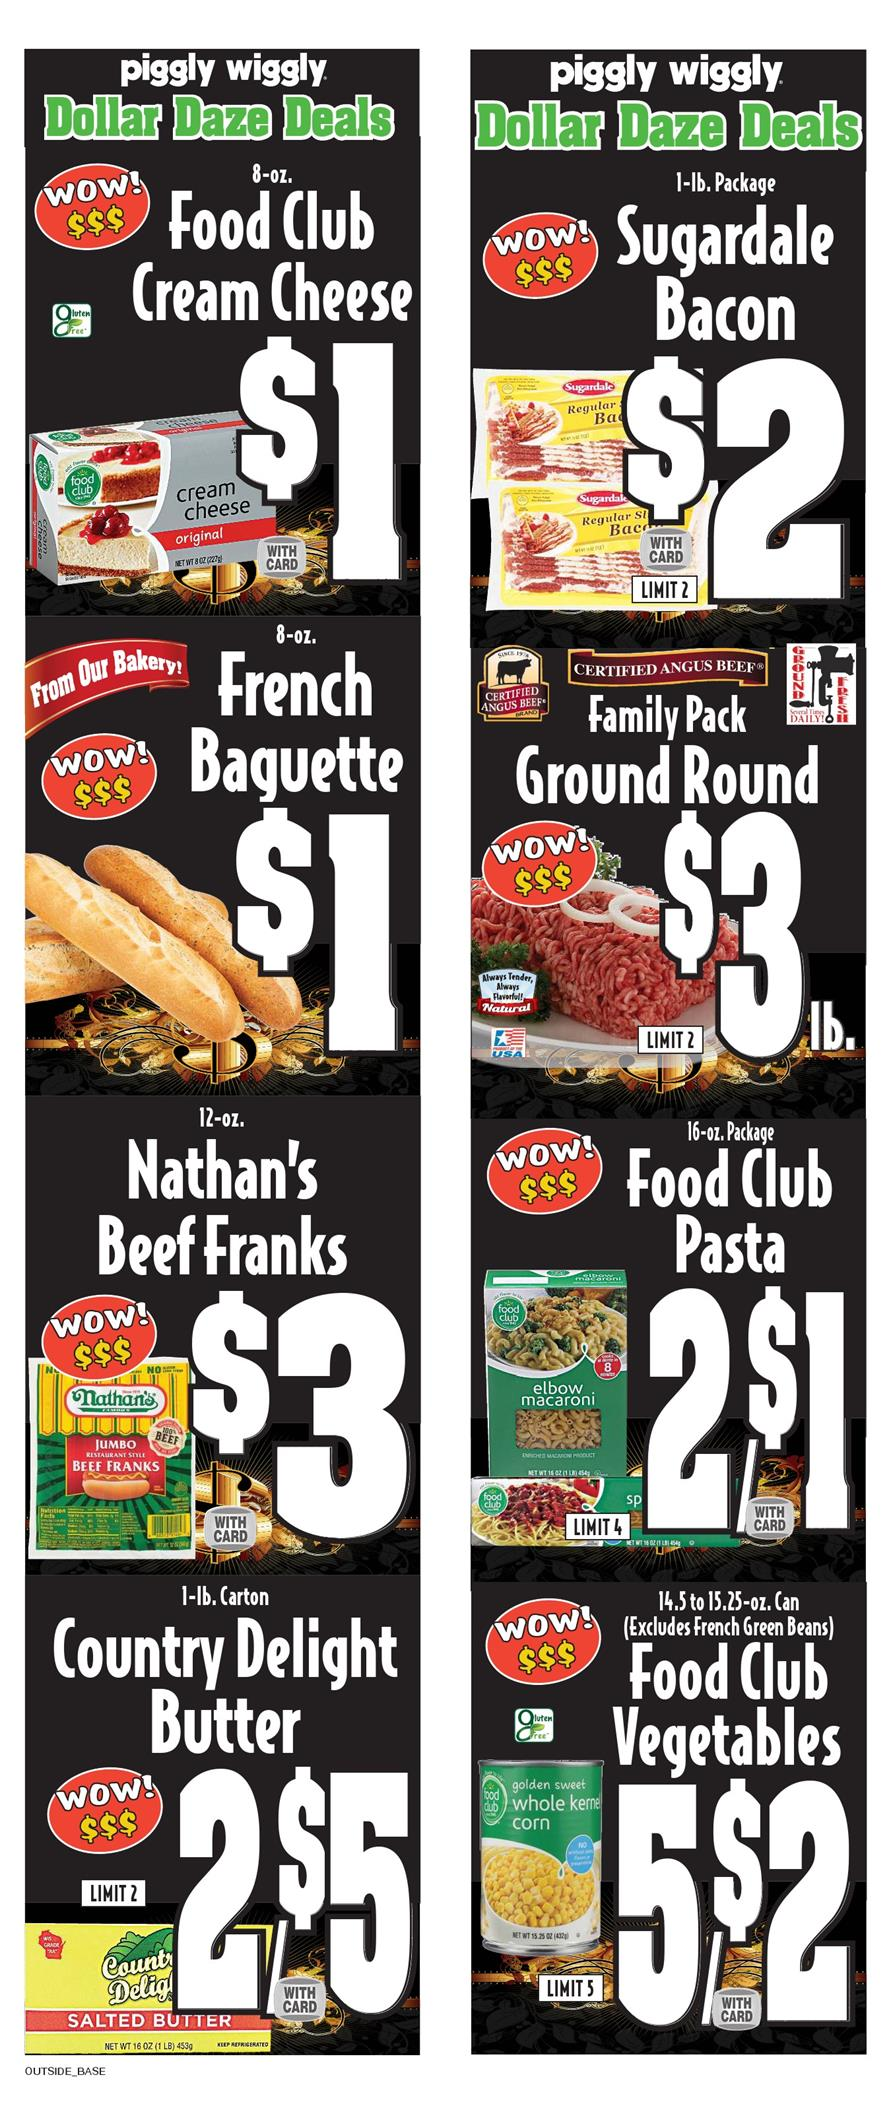 piggly wiggly final march ad valid from mar 25 31 2020